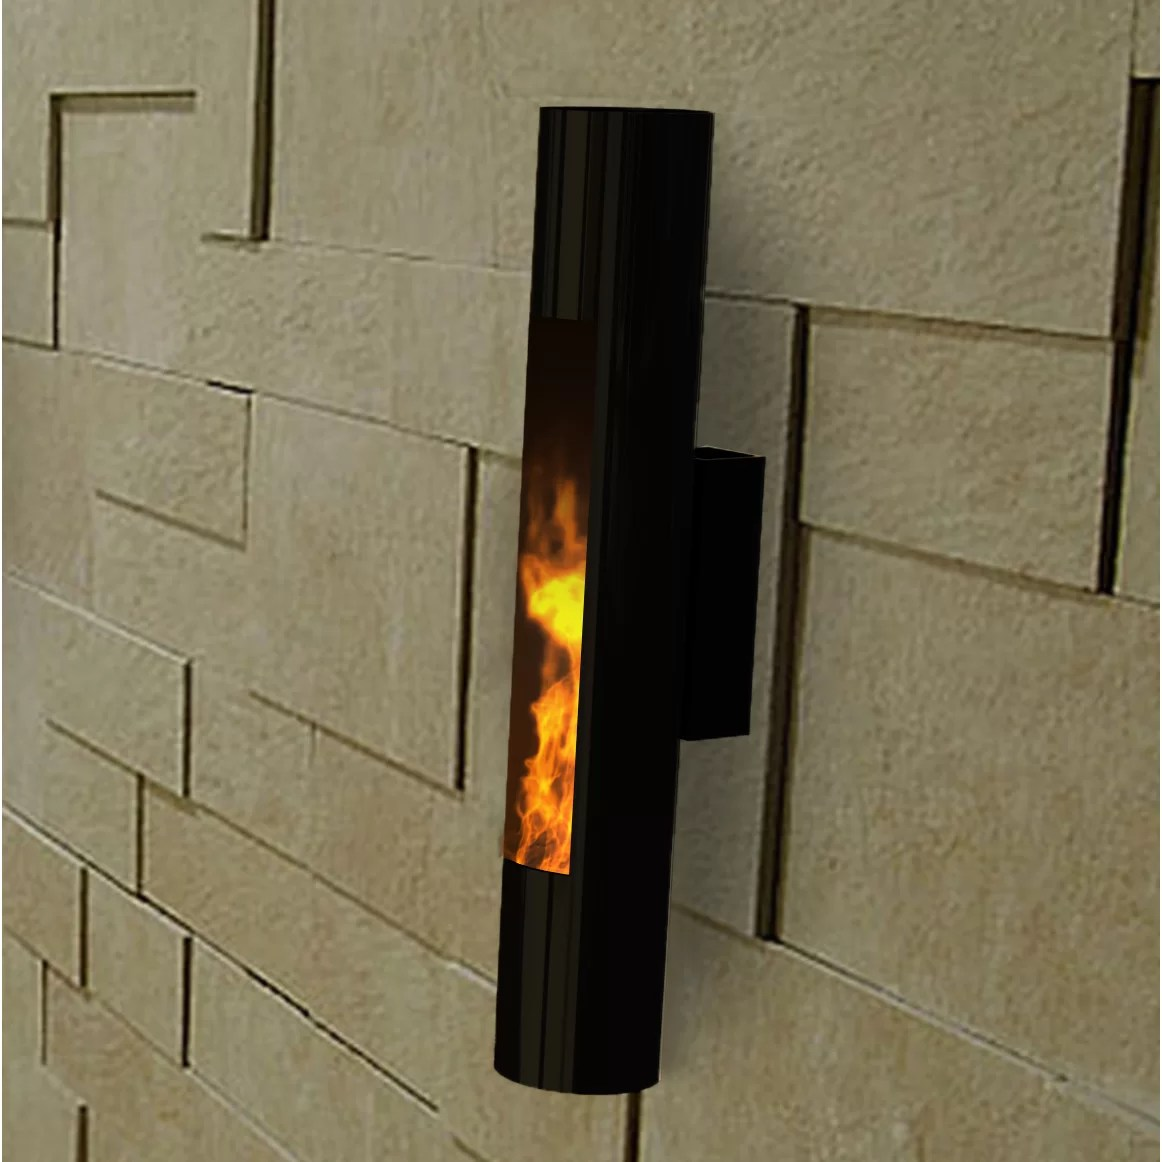 Wall Sconce Lighting Indoor Lumin Sconce Wall Mounted Bio-ethanol Fireplace & Reviews